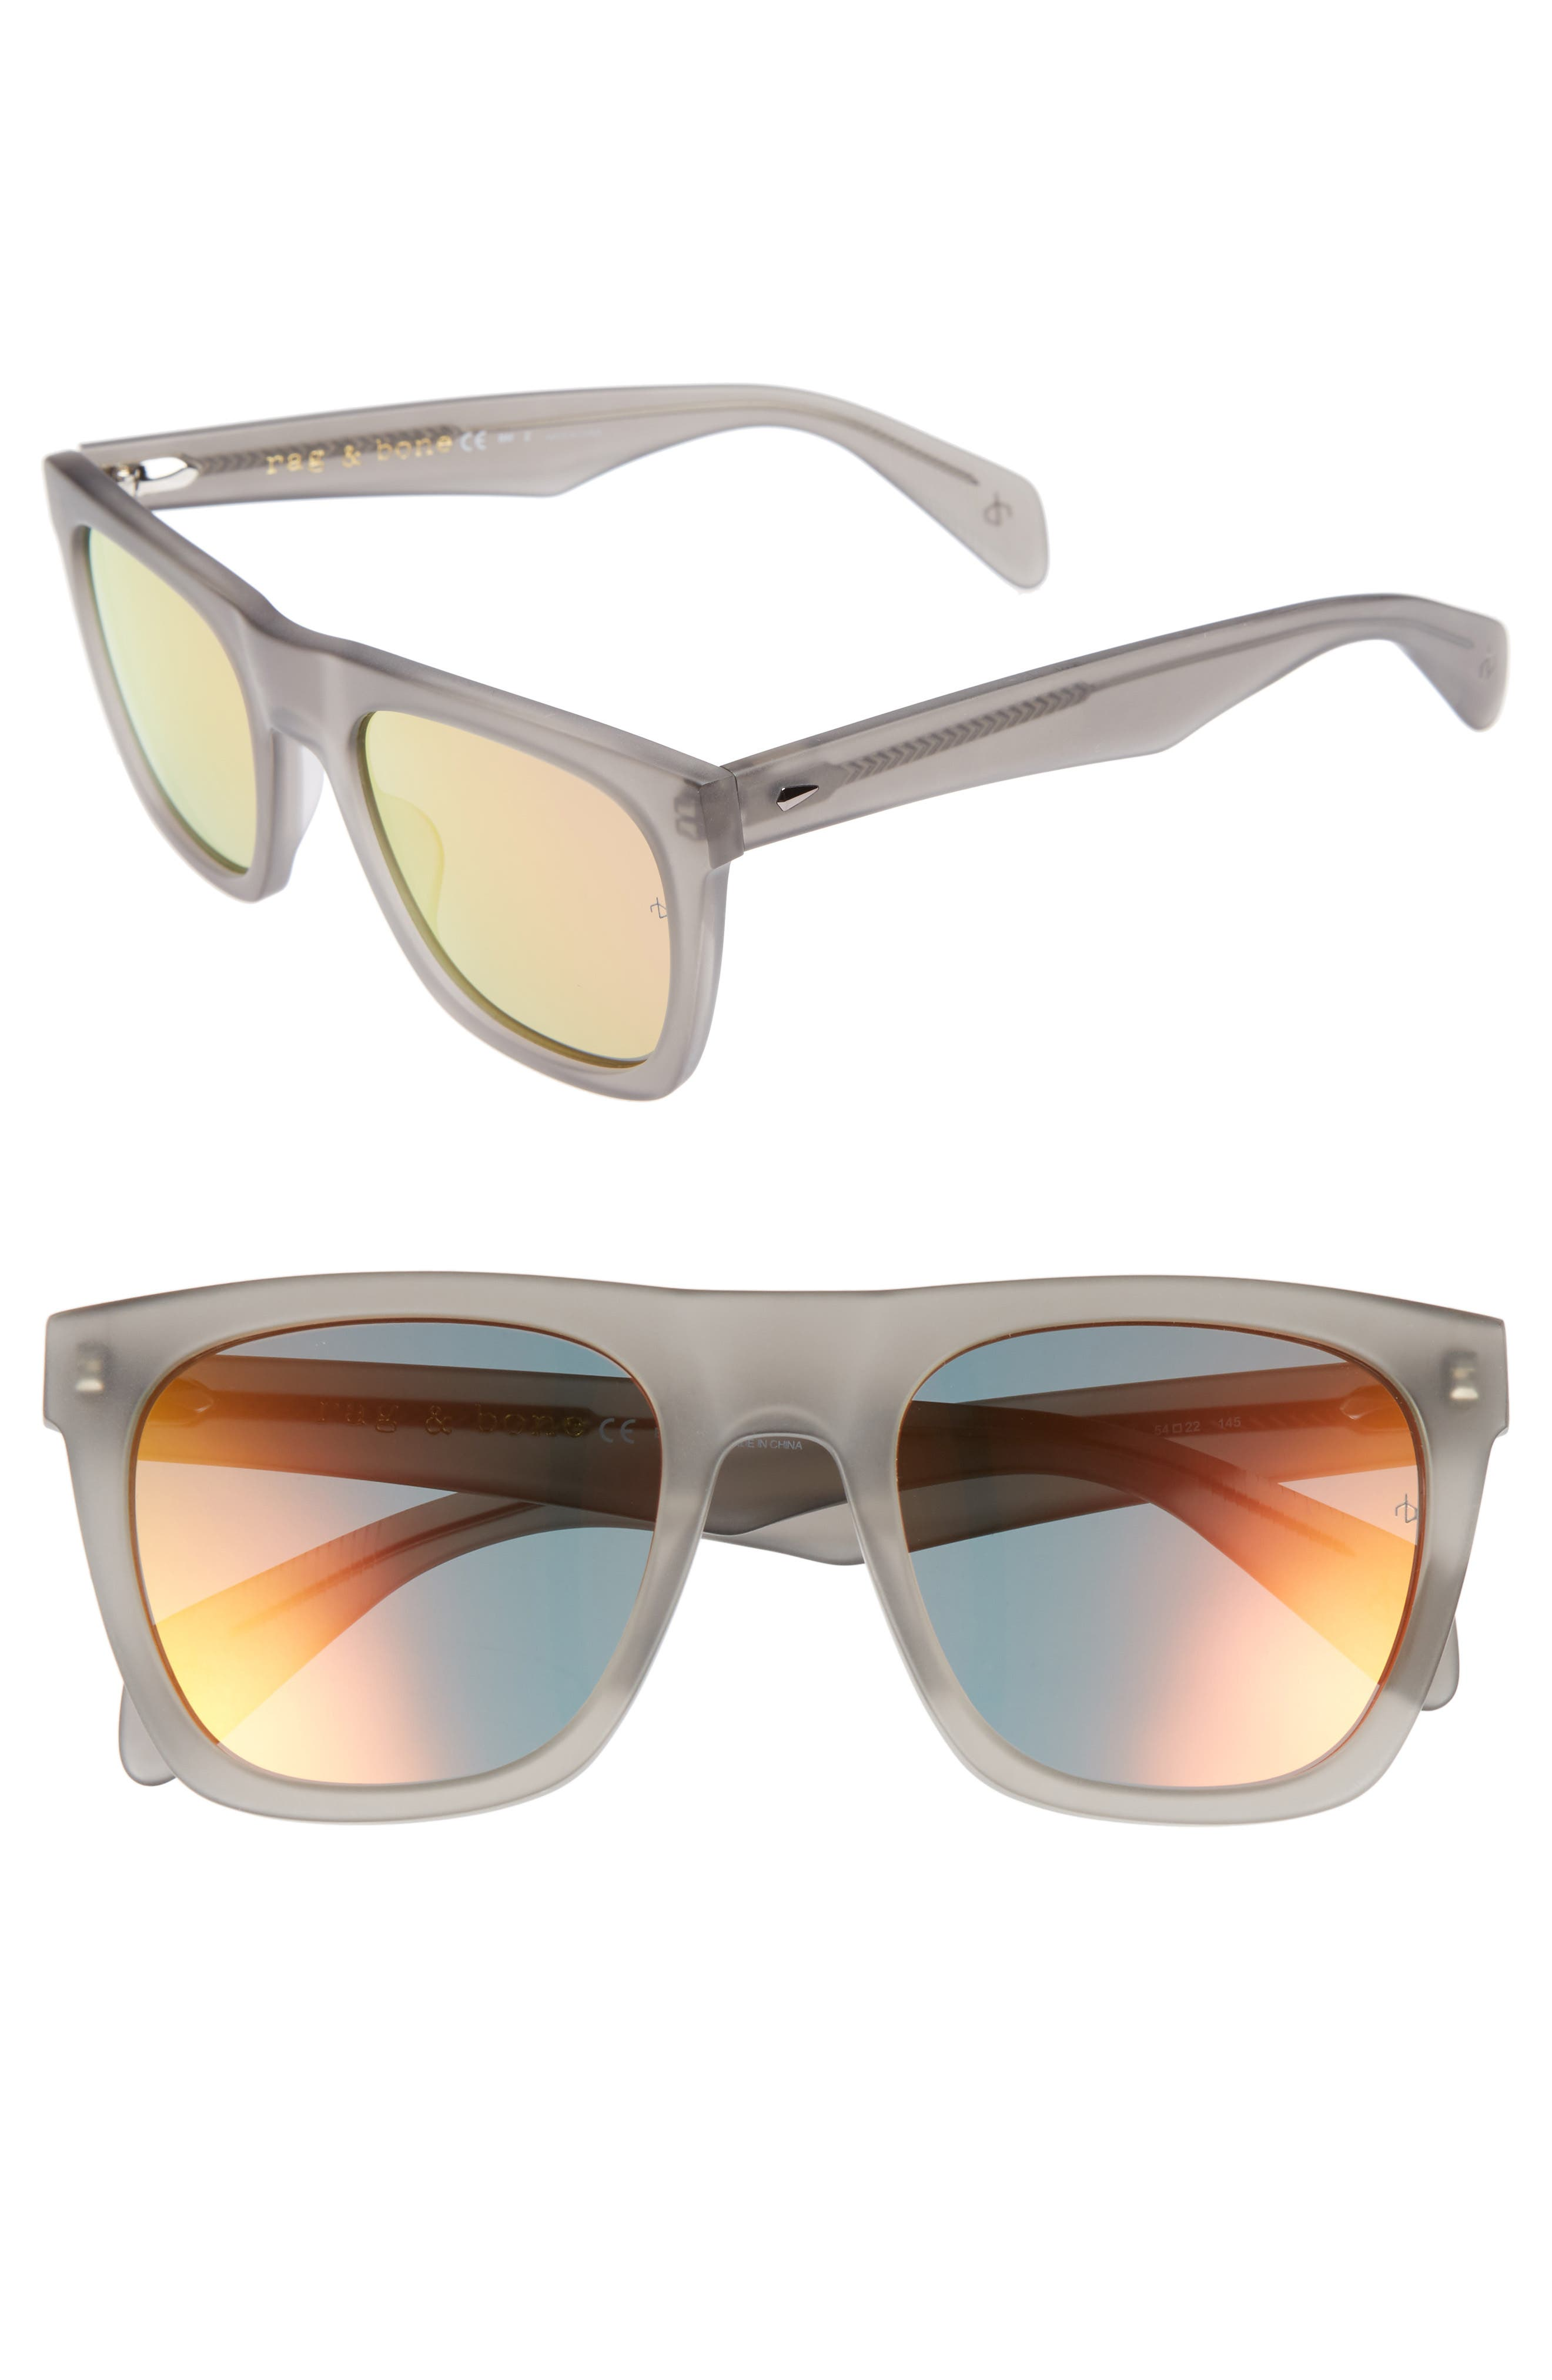 54mm Mirrored Sunglasses,                             Main thumbnail 1, color,                             MATTE GREY